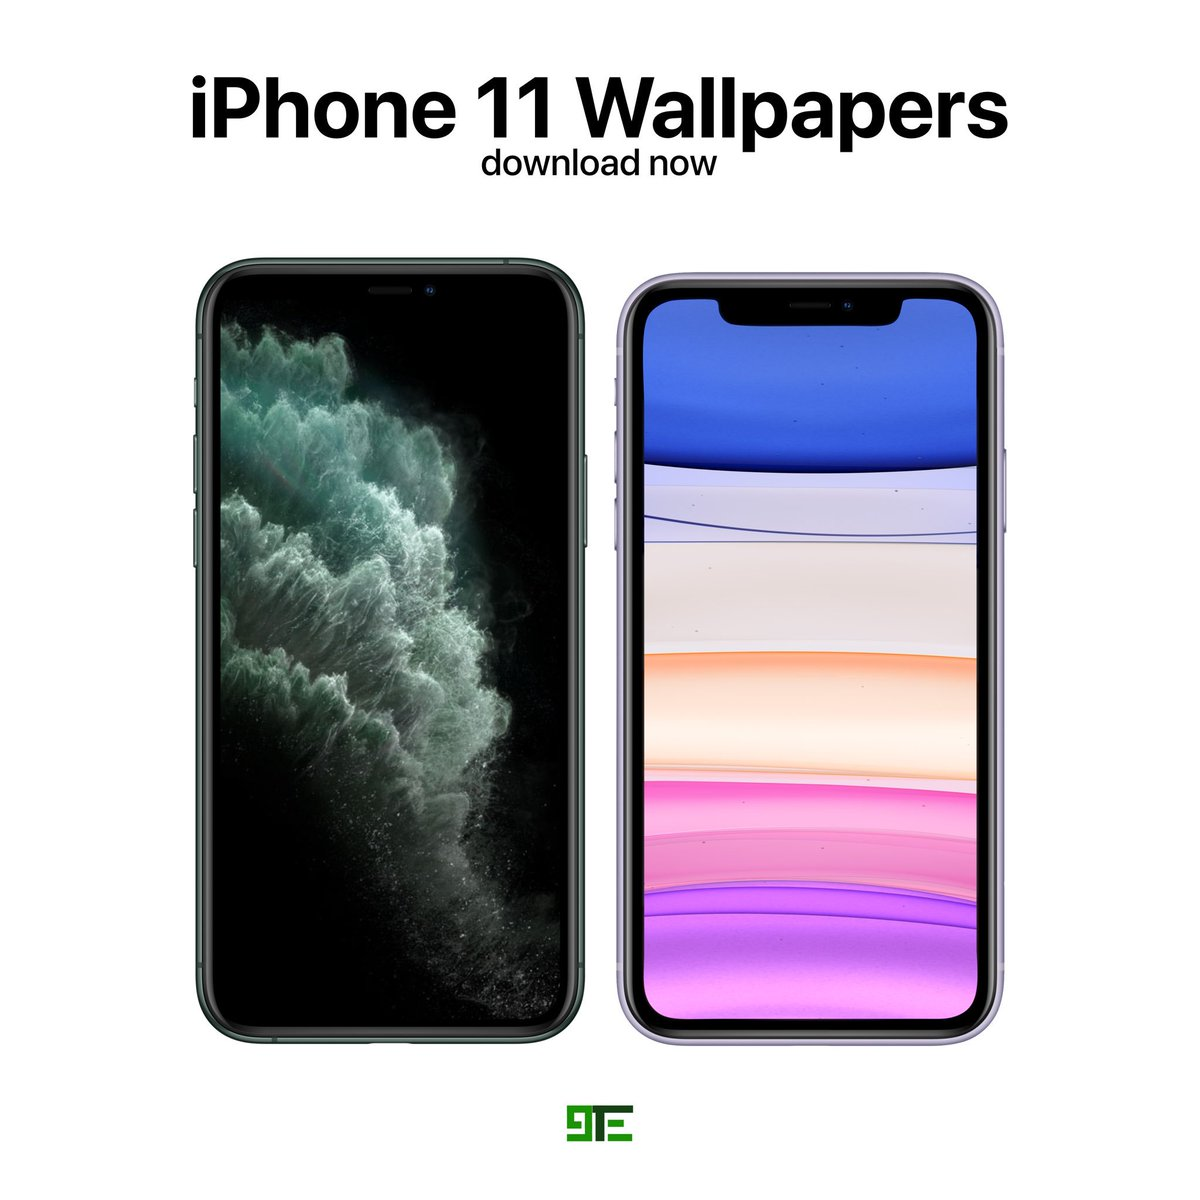 9techeleven On Twitter Download The New Iphone 11 11 Pro Wallpapers Here List Will Be Updated Https T Co Suahusim0d Appleevent Iphonepro Iphone11 Iphonepromax Iphonexi Iphone11pro Iphone11promax Apple Wallpaper Wallpapers Iphone